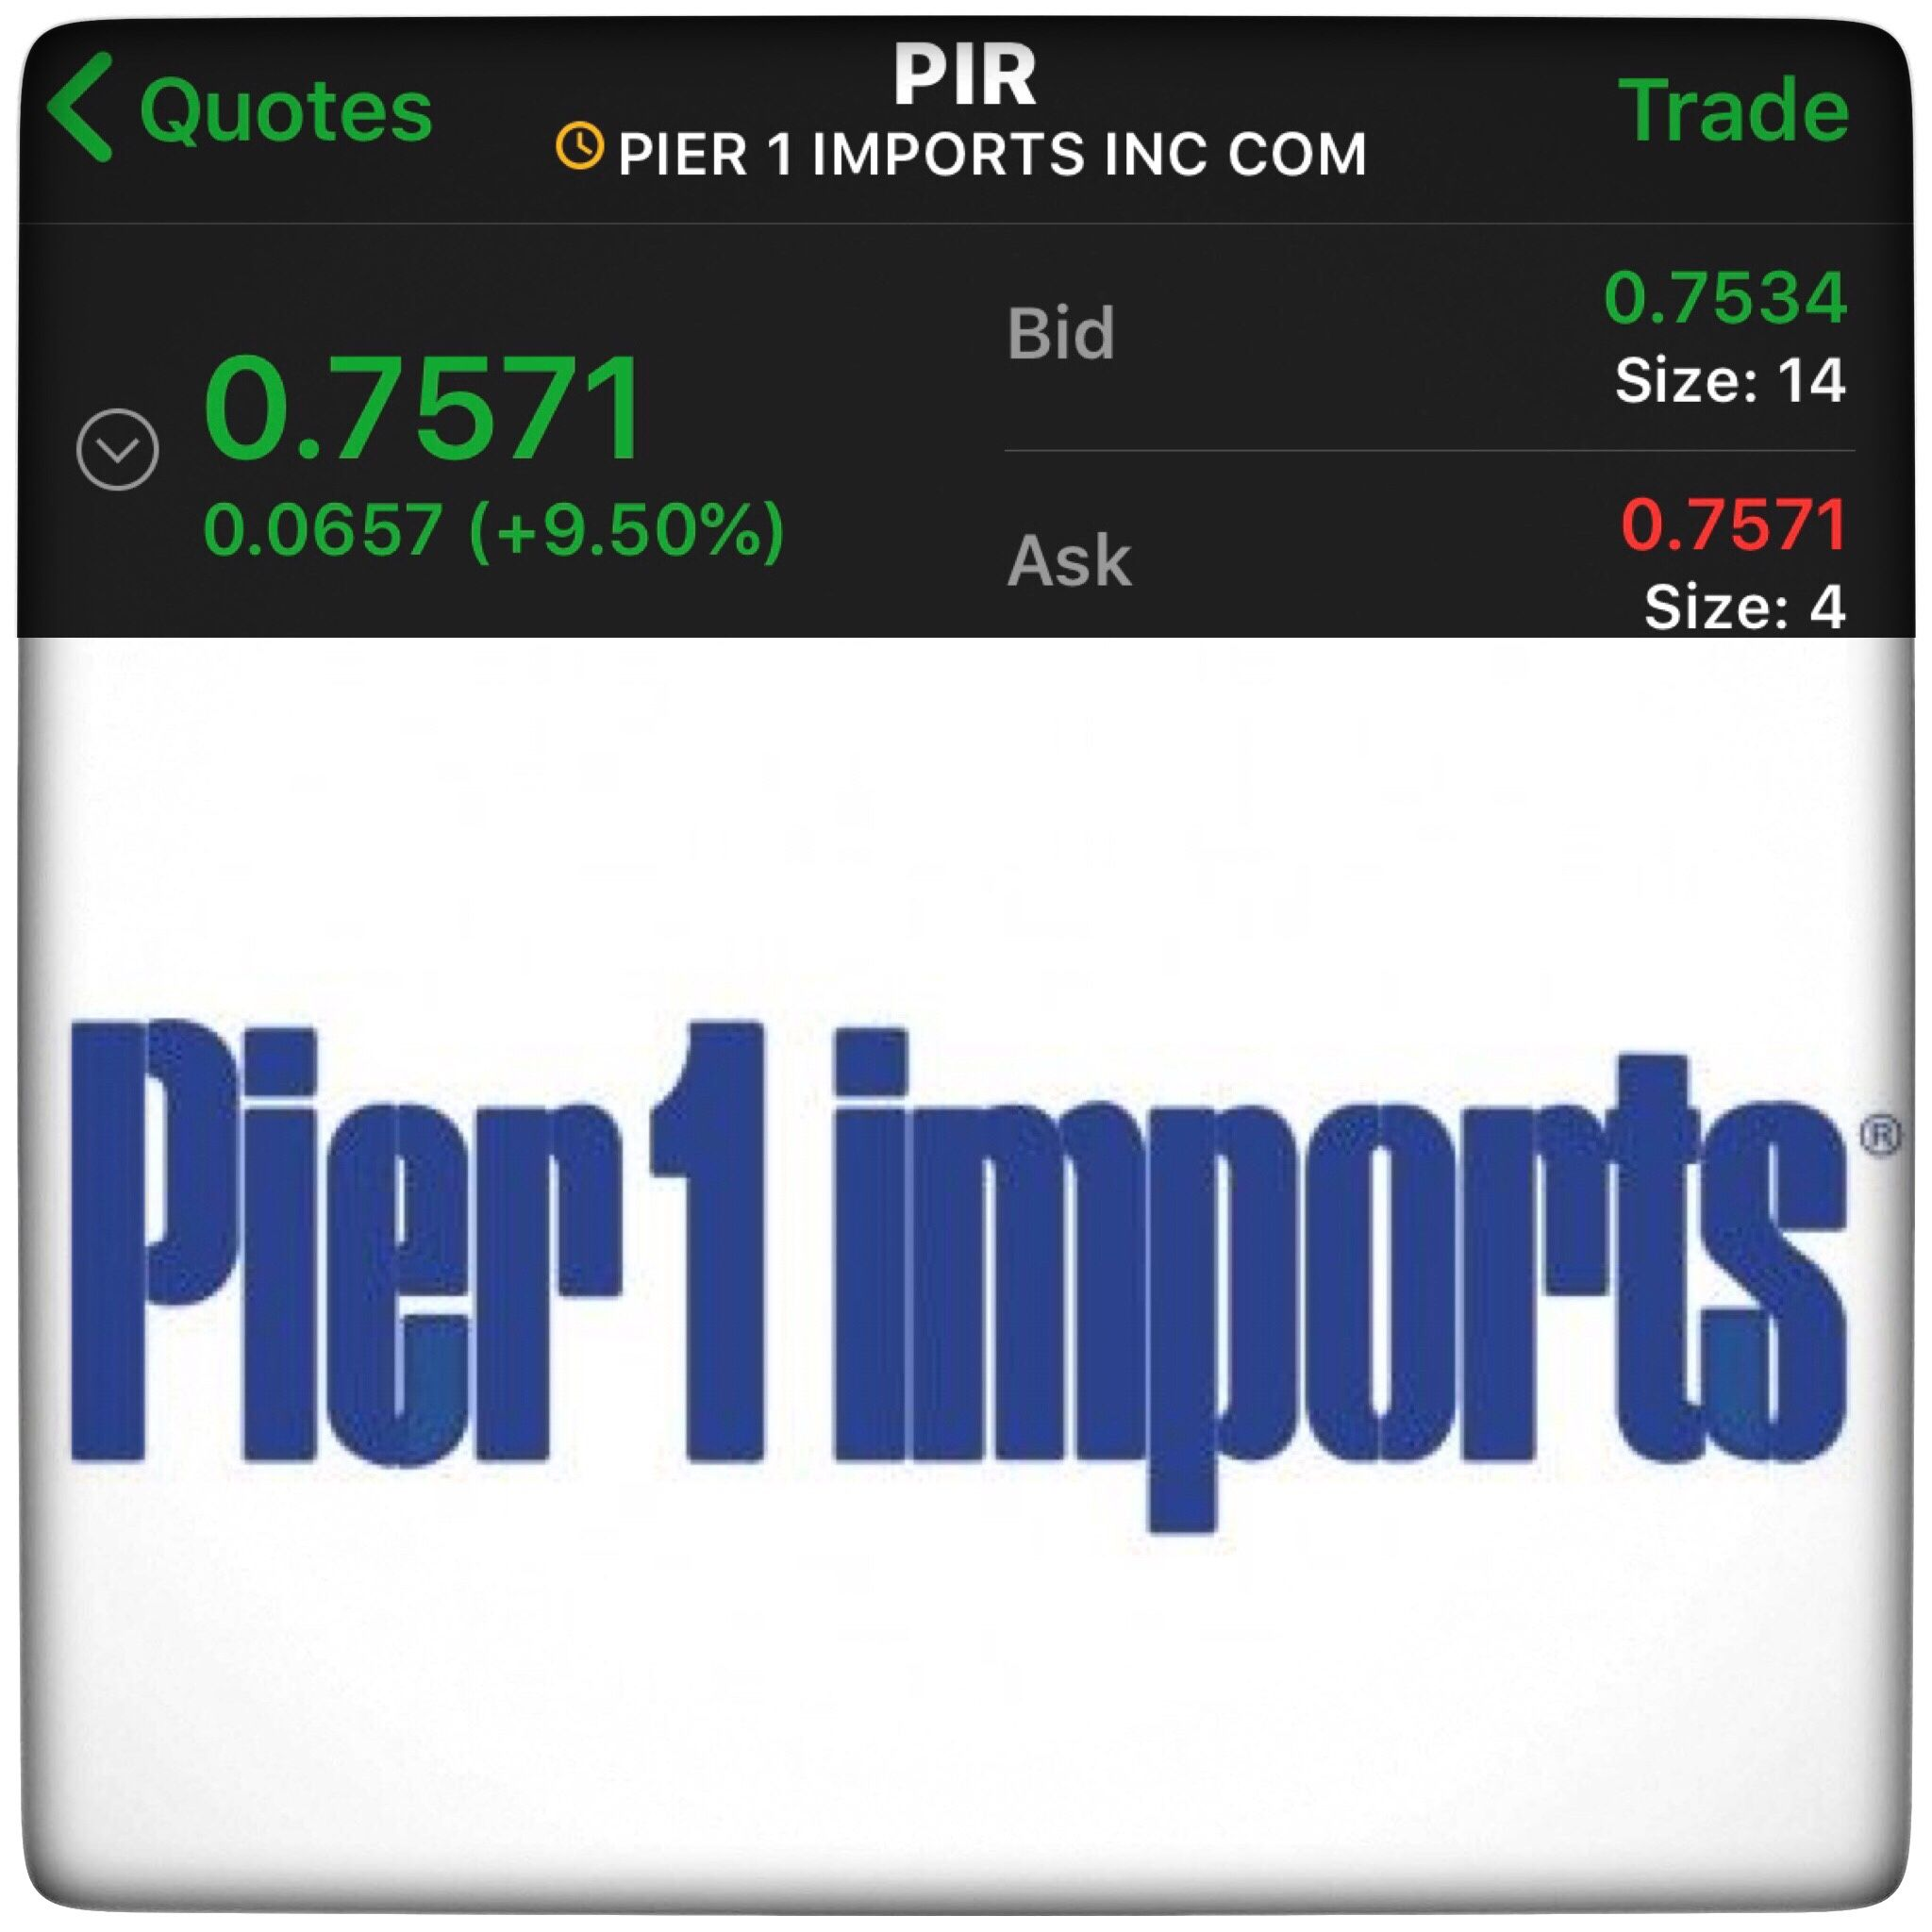 Implied volatility surging for pier 1 pir stock options